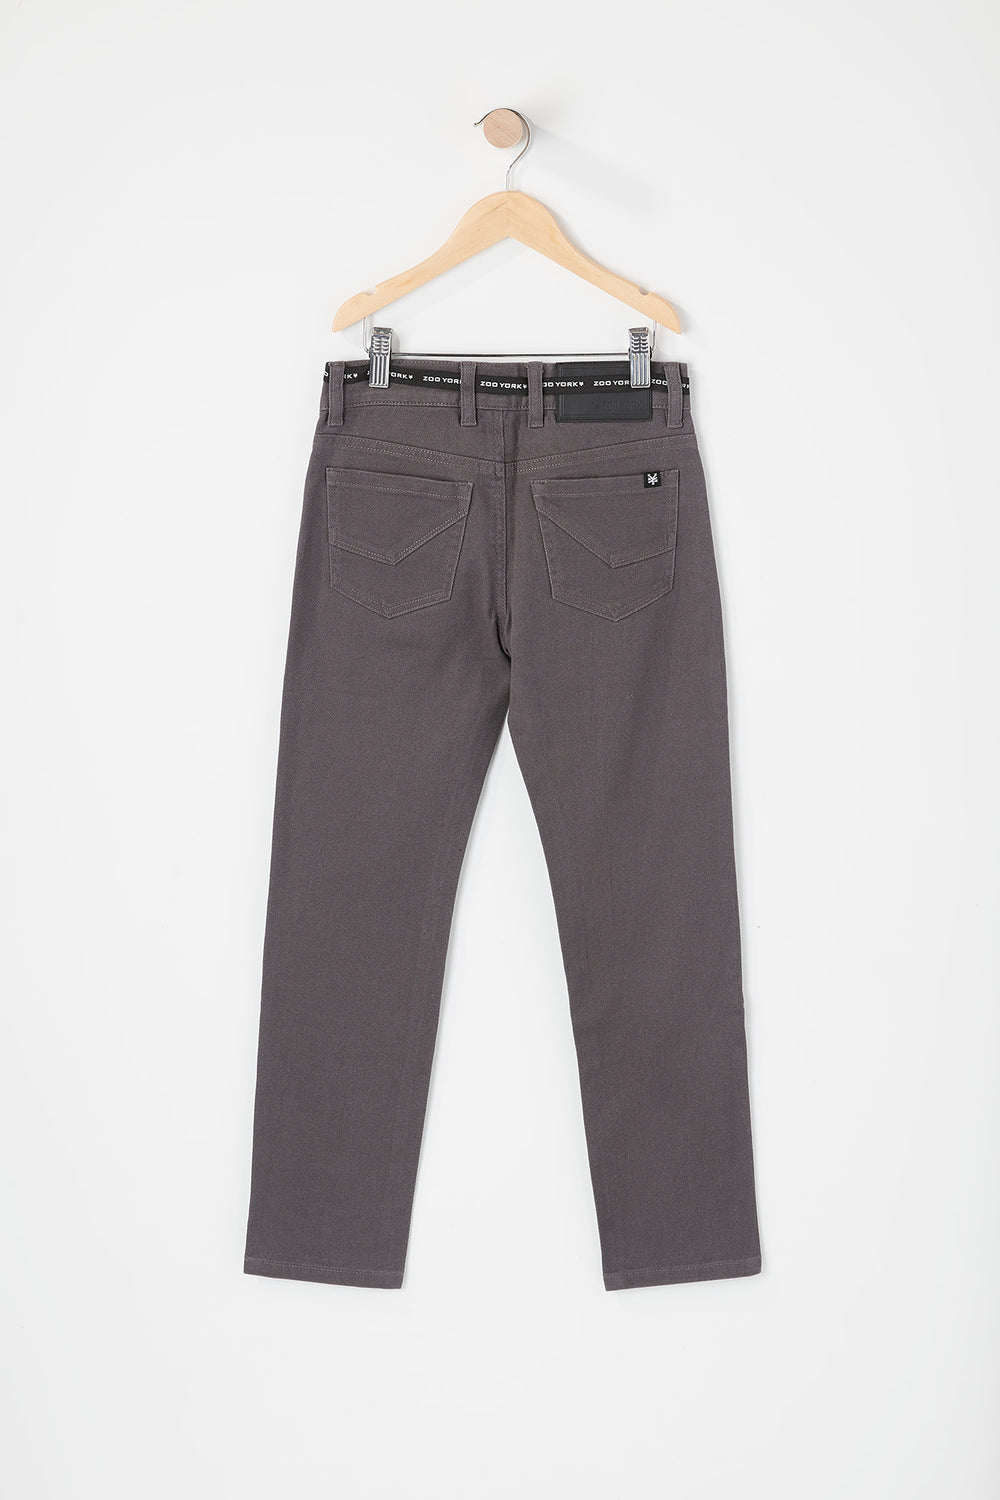 Zoo York Youth Skinny Jeans Heather Grey